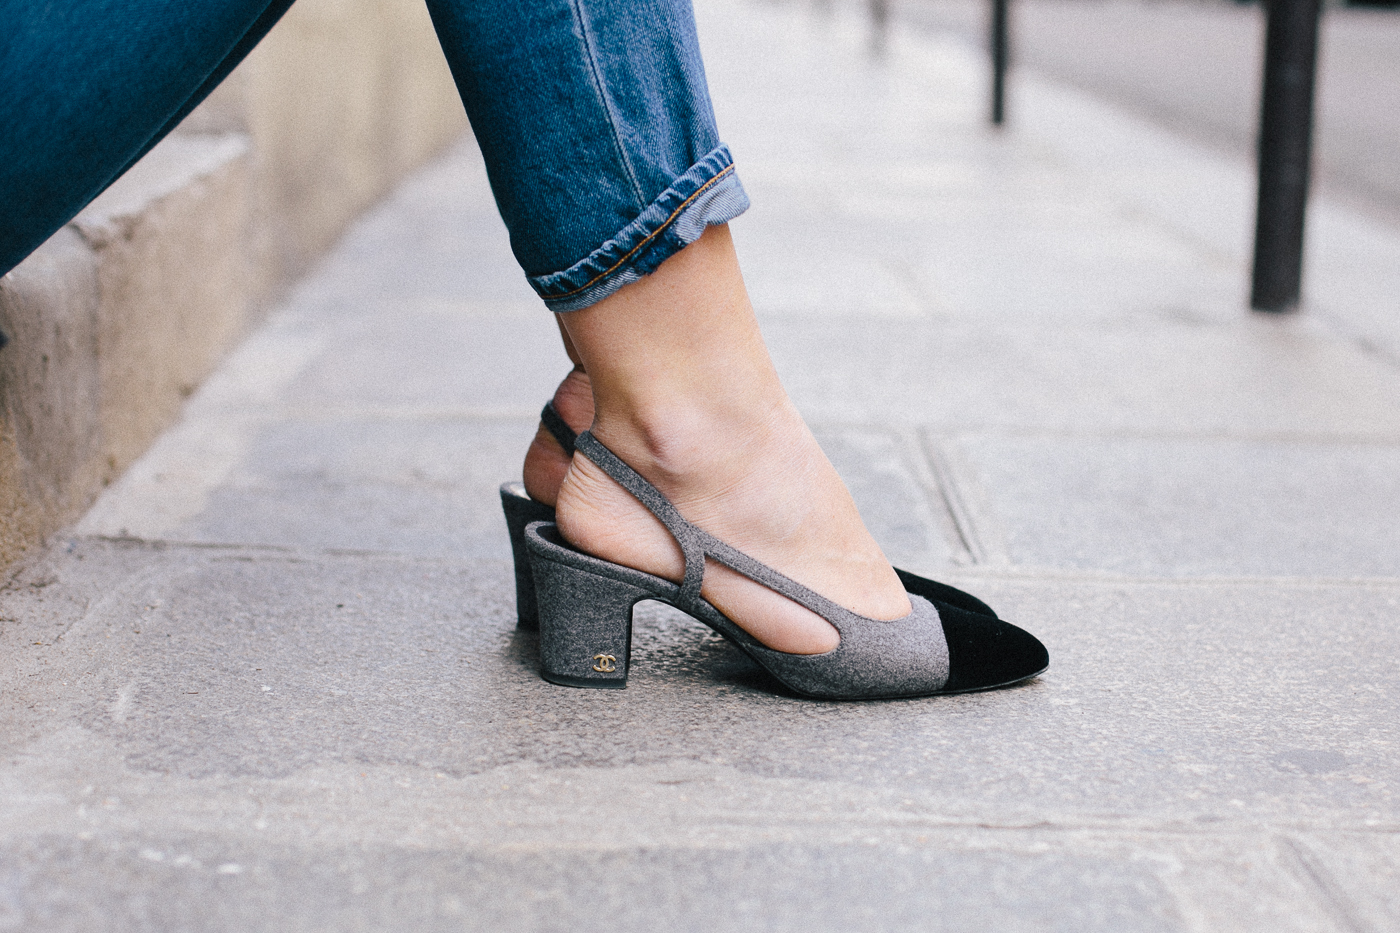 OUTFIT: Chanel slingback heels, gray and black velvet | Bikinis & Passports